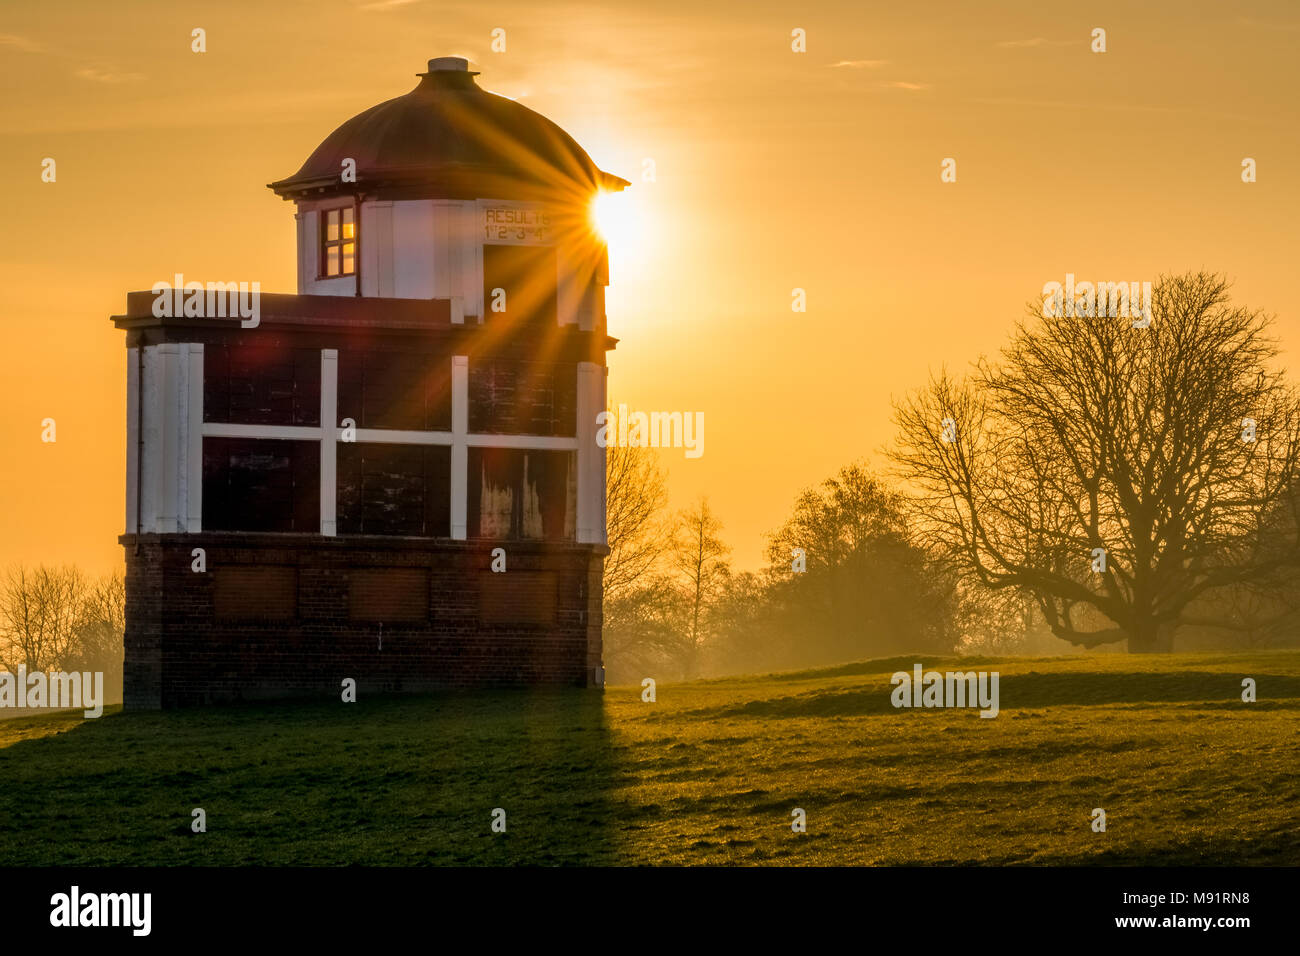 Sunrise at the race organisers directors box office at Pontefract Race Course, West Yorkshire, UK. Horse racing. - Stock Image